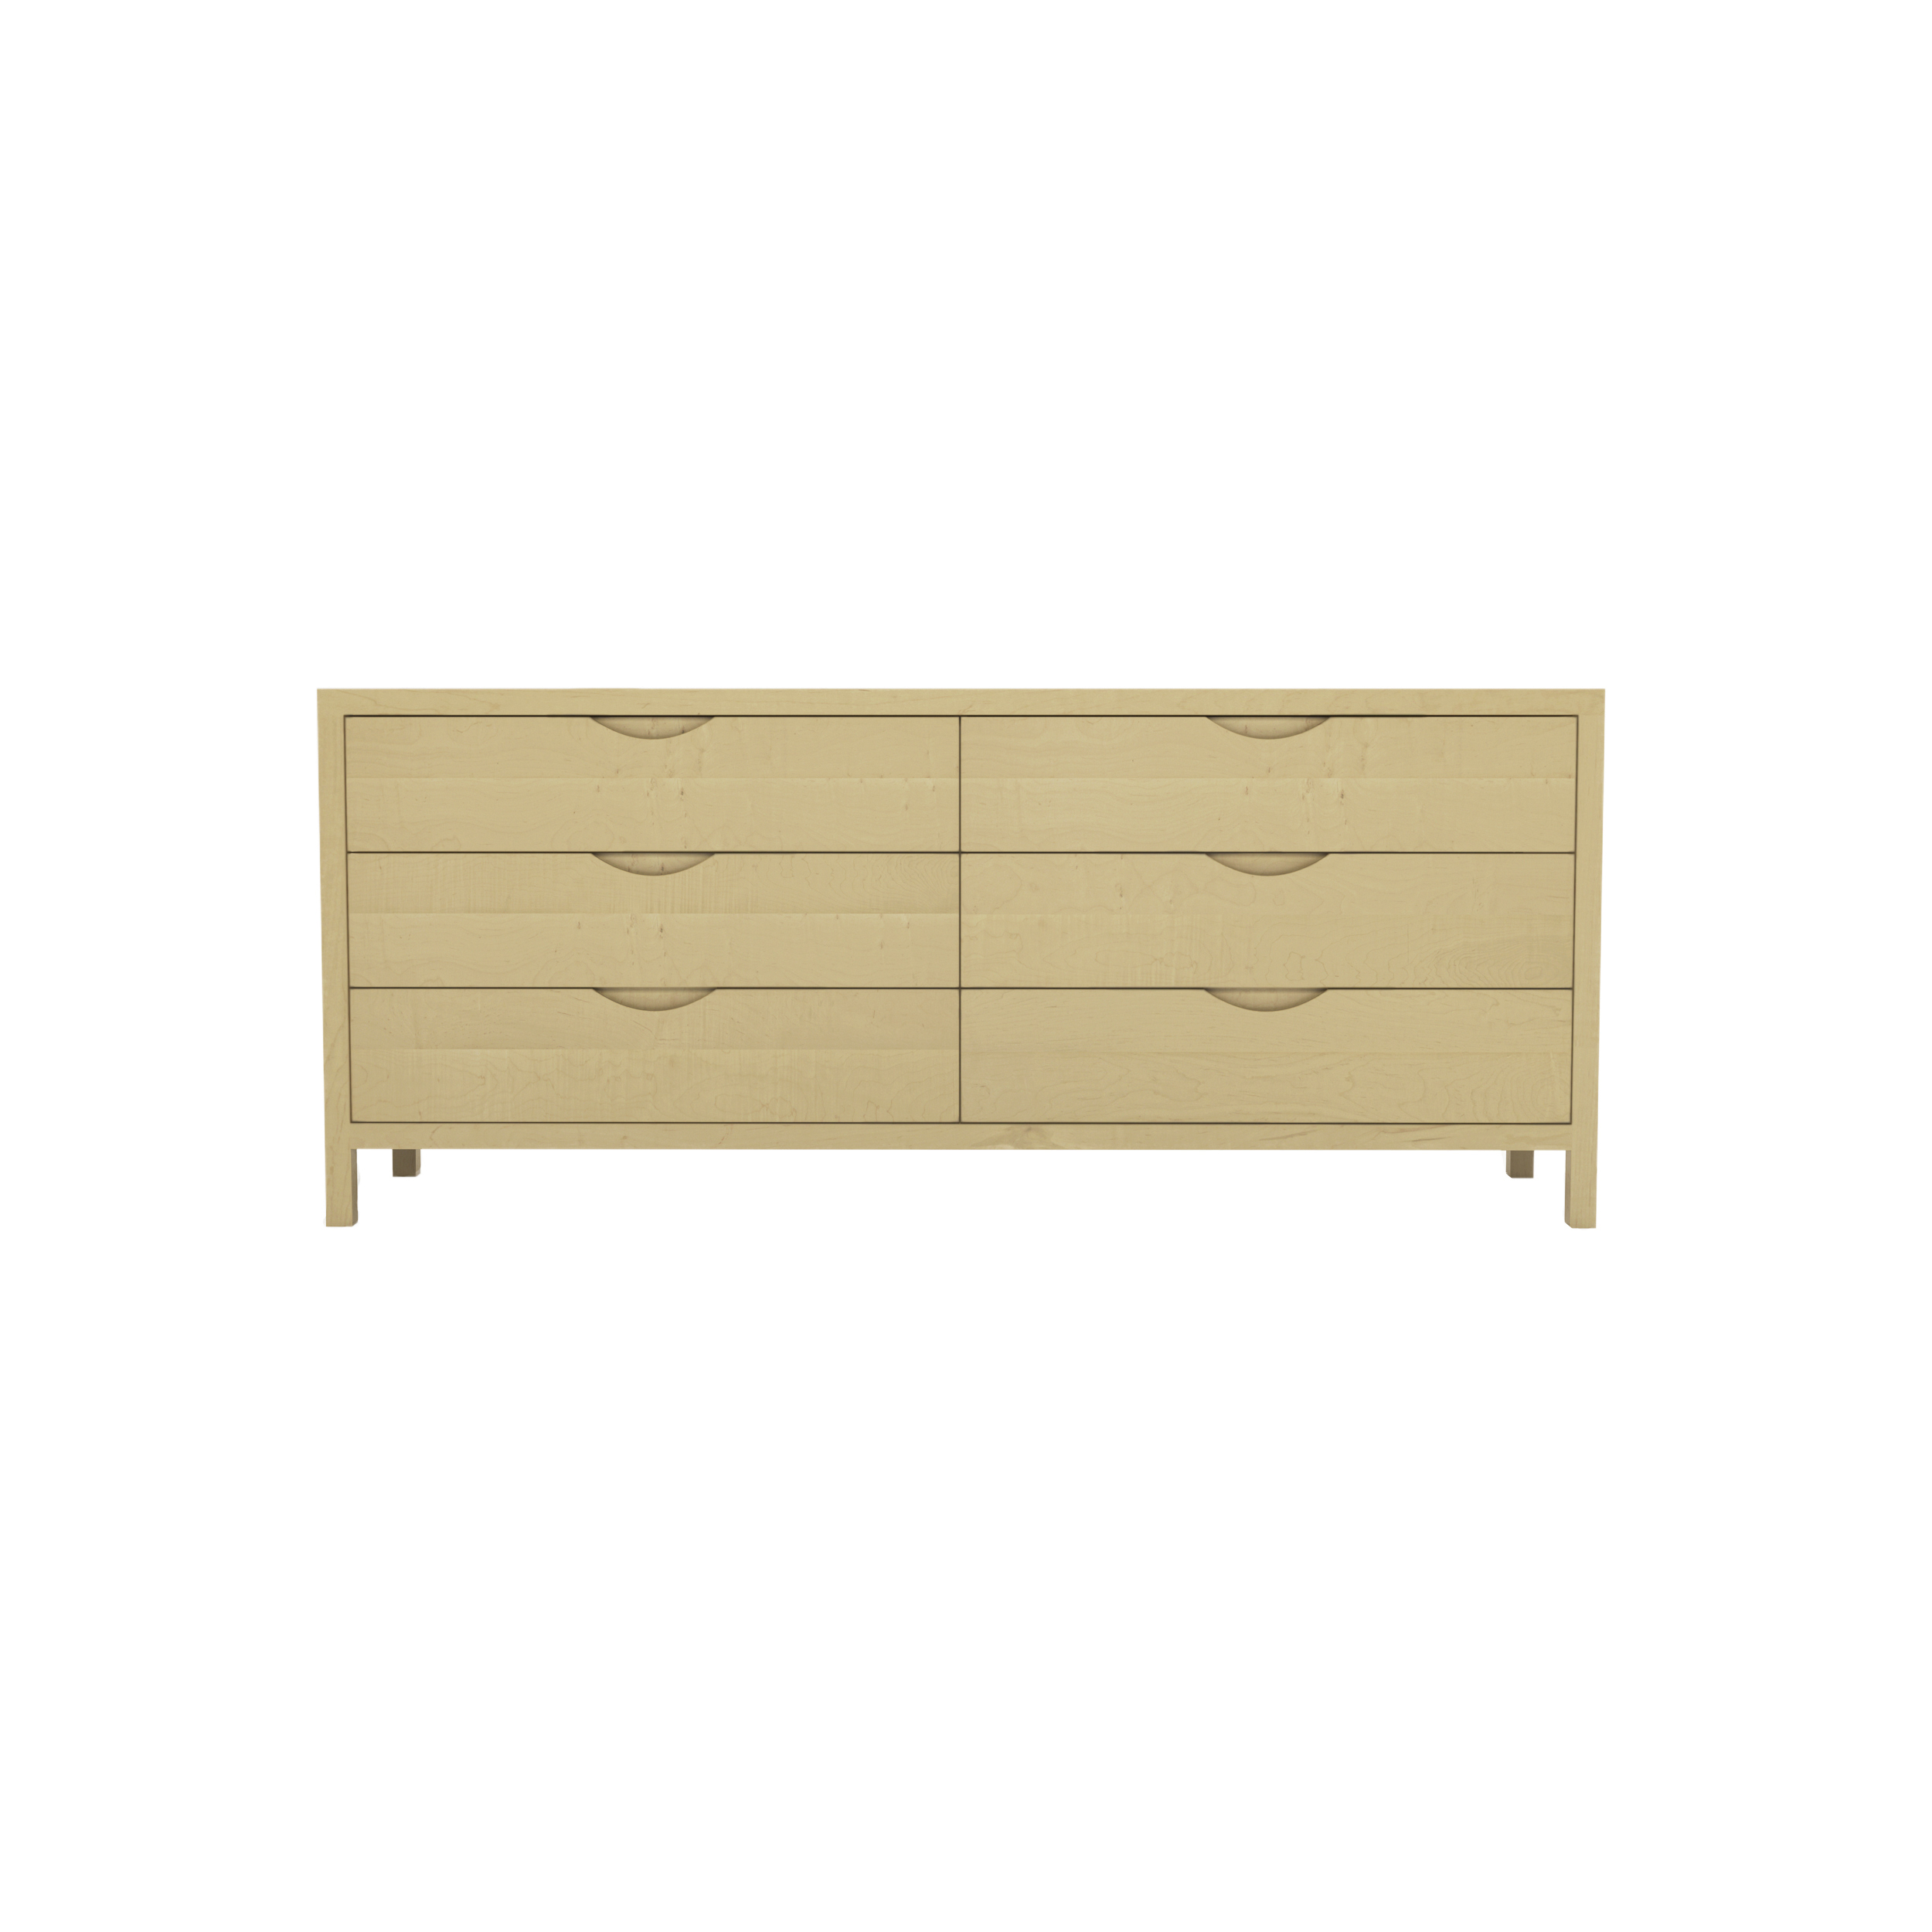 Series 353 Dresser With Six Drawers At 72″ In Width